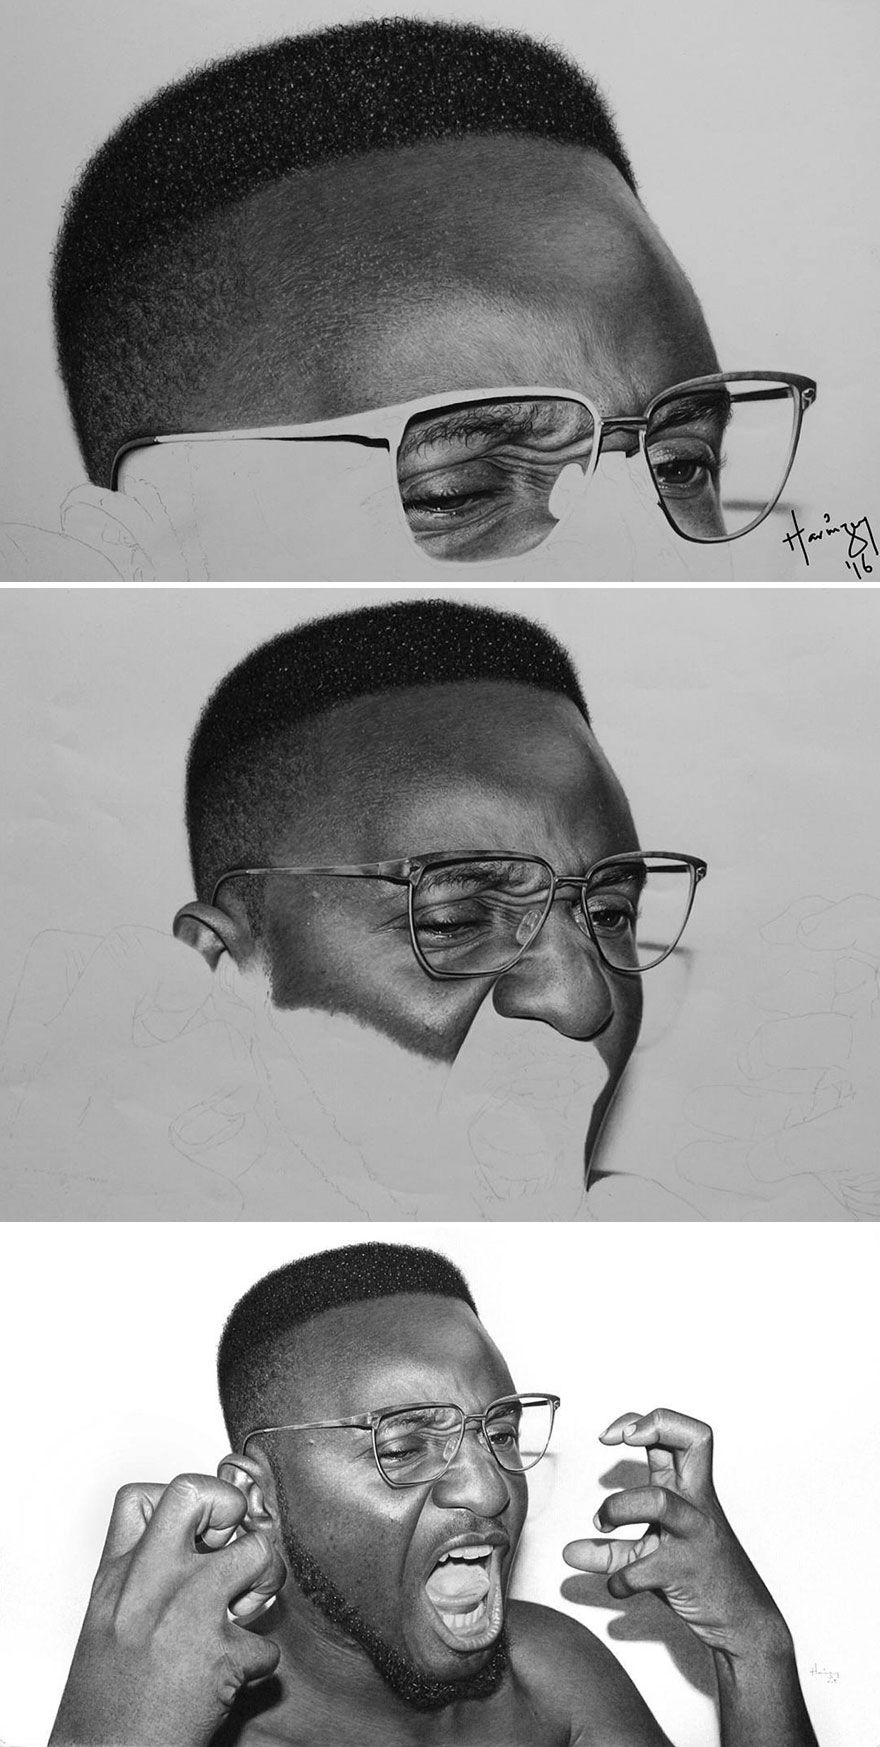 Arinze stanley art in 2019 pencil portrait realistic